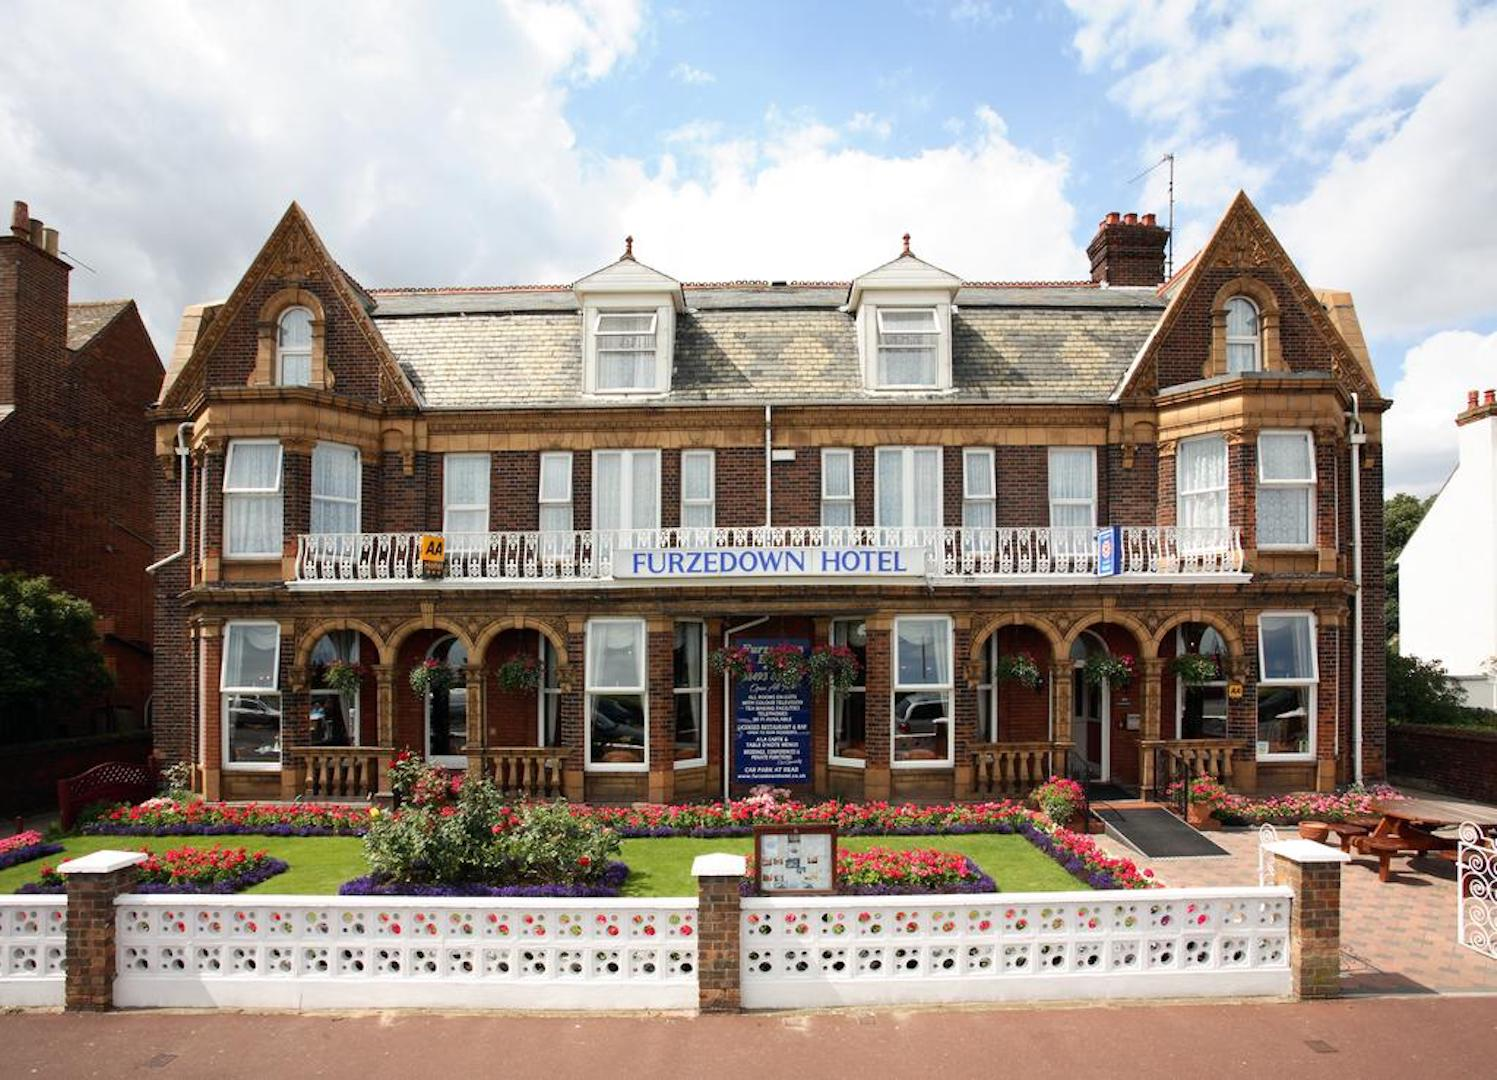 A large brick building with grass in front of a house at Furzedown Hotel.